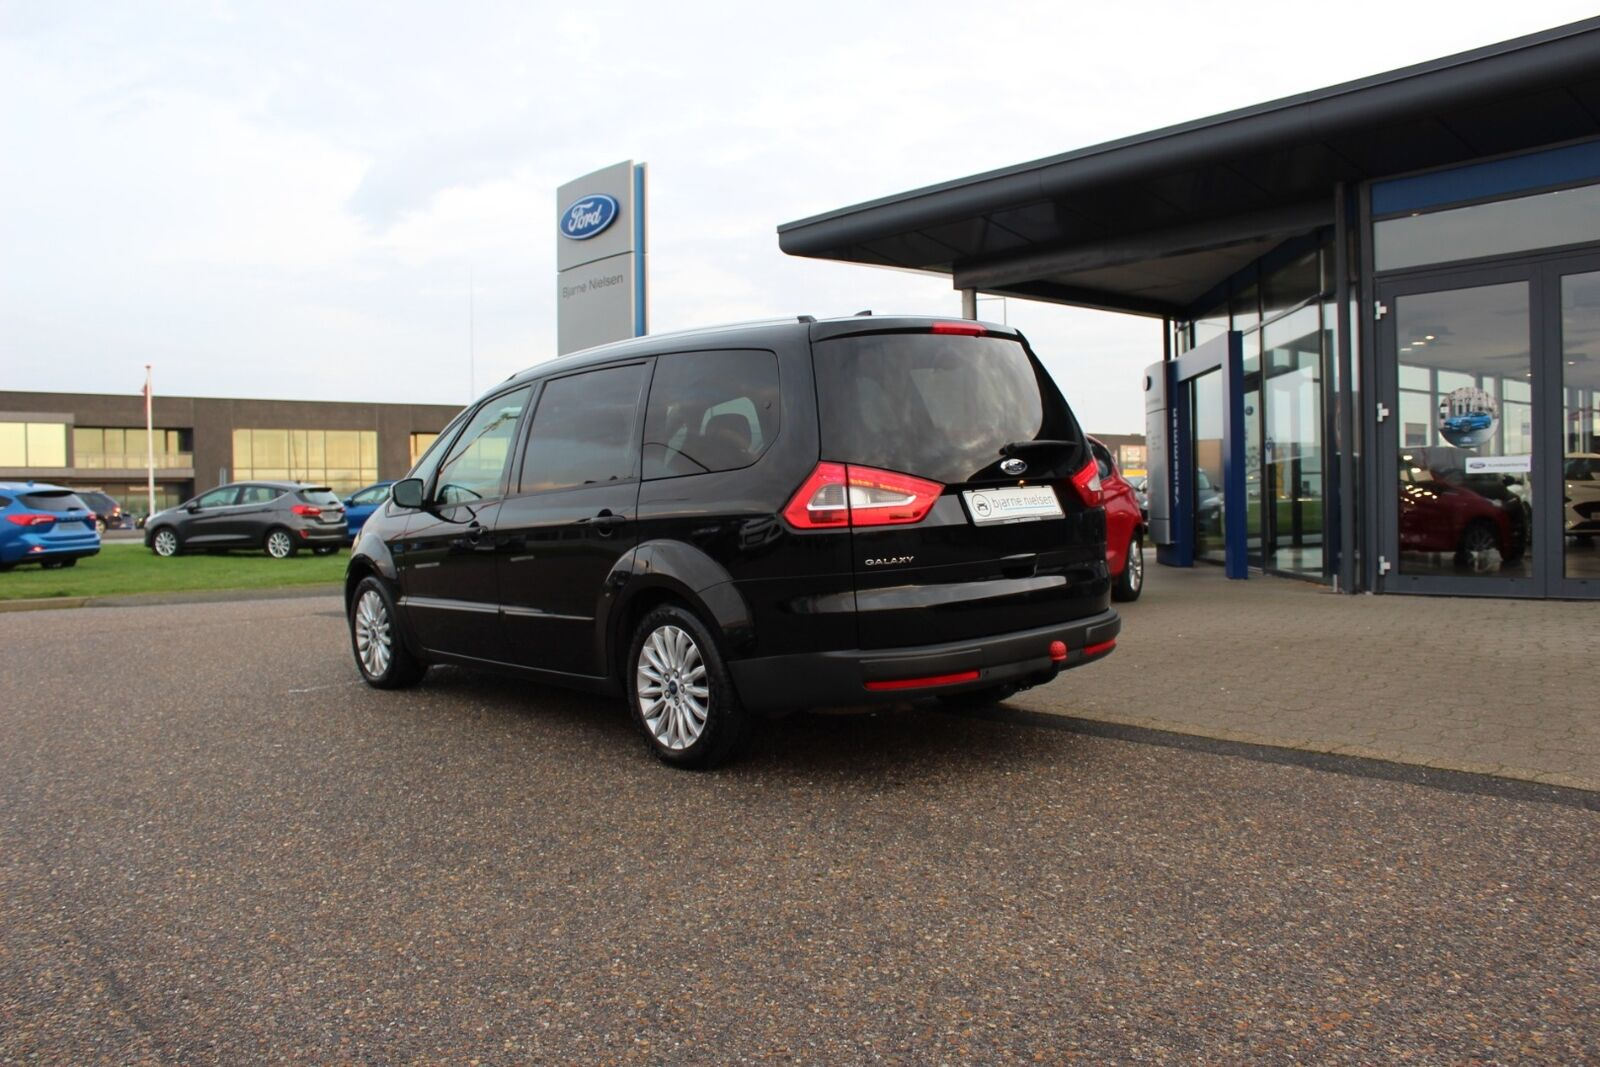 Ford Galaxy 2,0 TDCi 163 Collection 7prs - billede 2